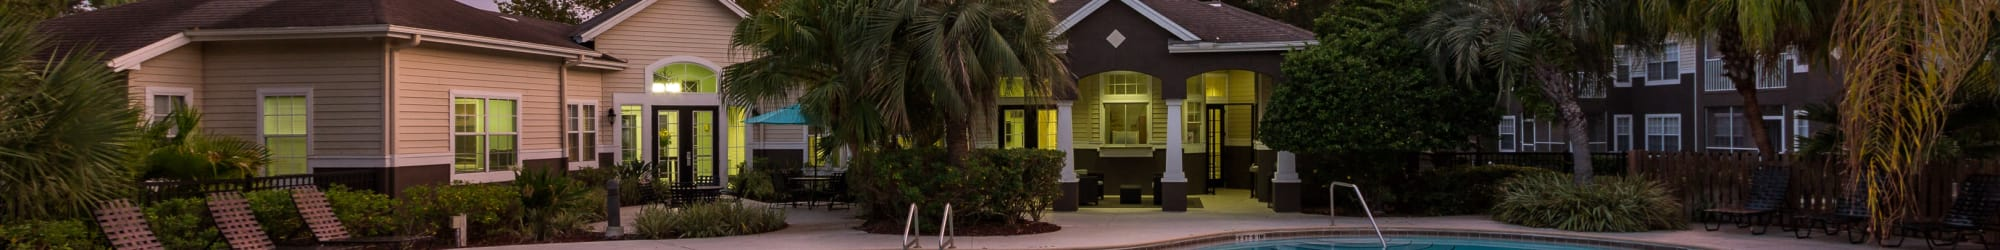 Learn more about our apartments in Brandon at Alvista Sterling Palms